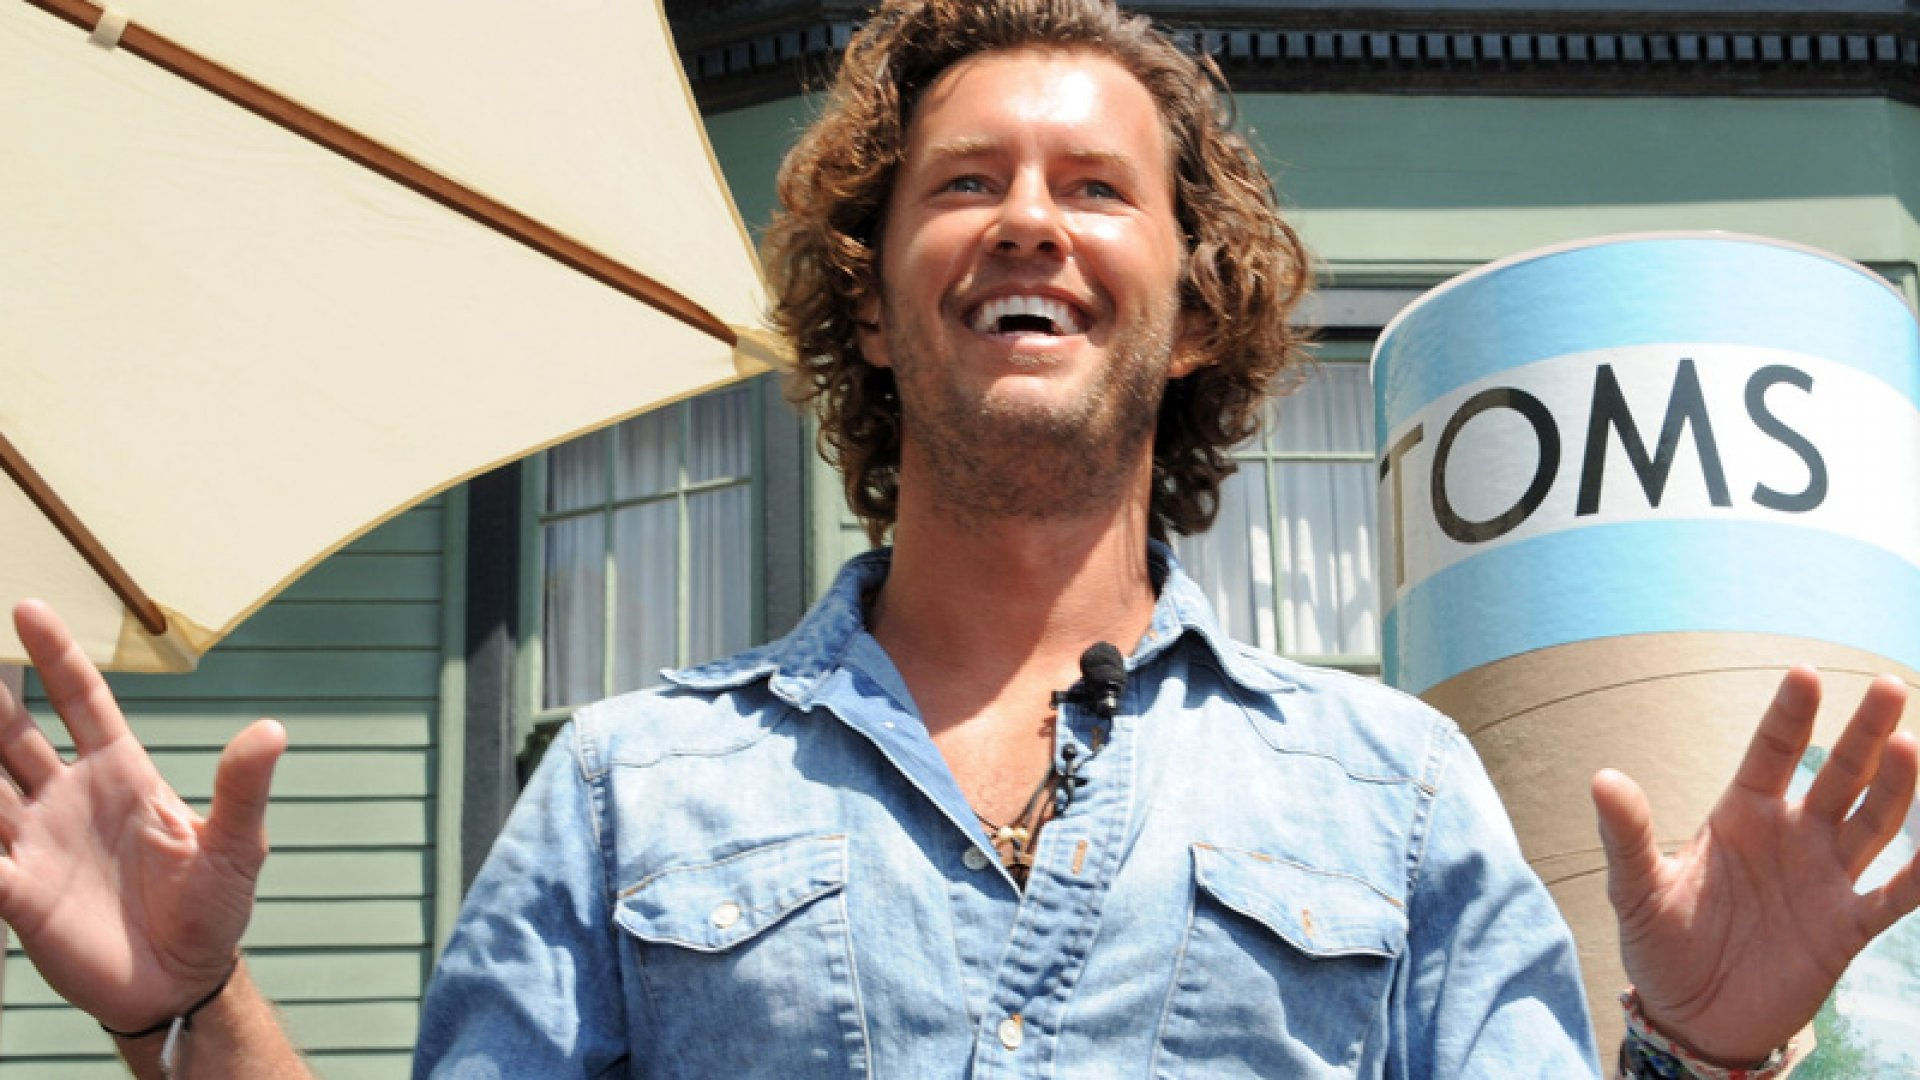 Blake Mycoskie, the founder of TOMS, has become the poster boy for social entrepreneurship. <br> <br>